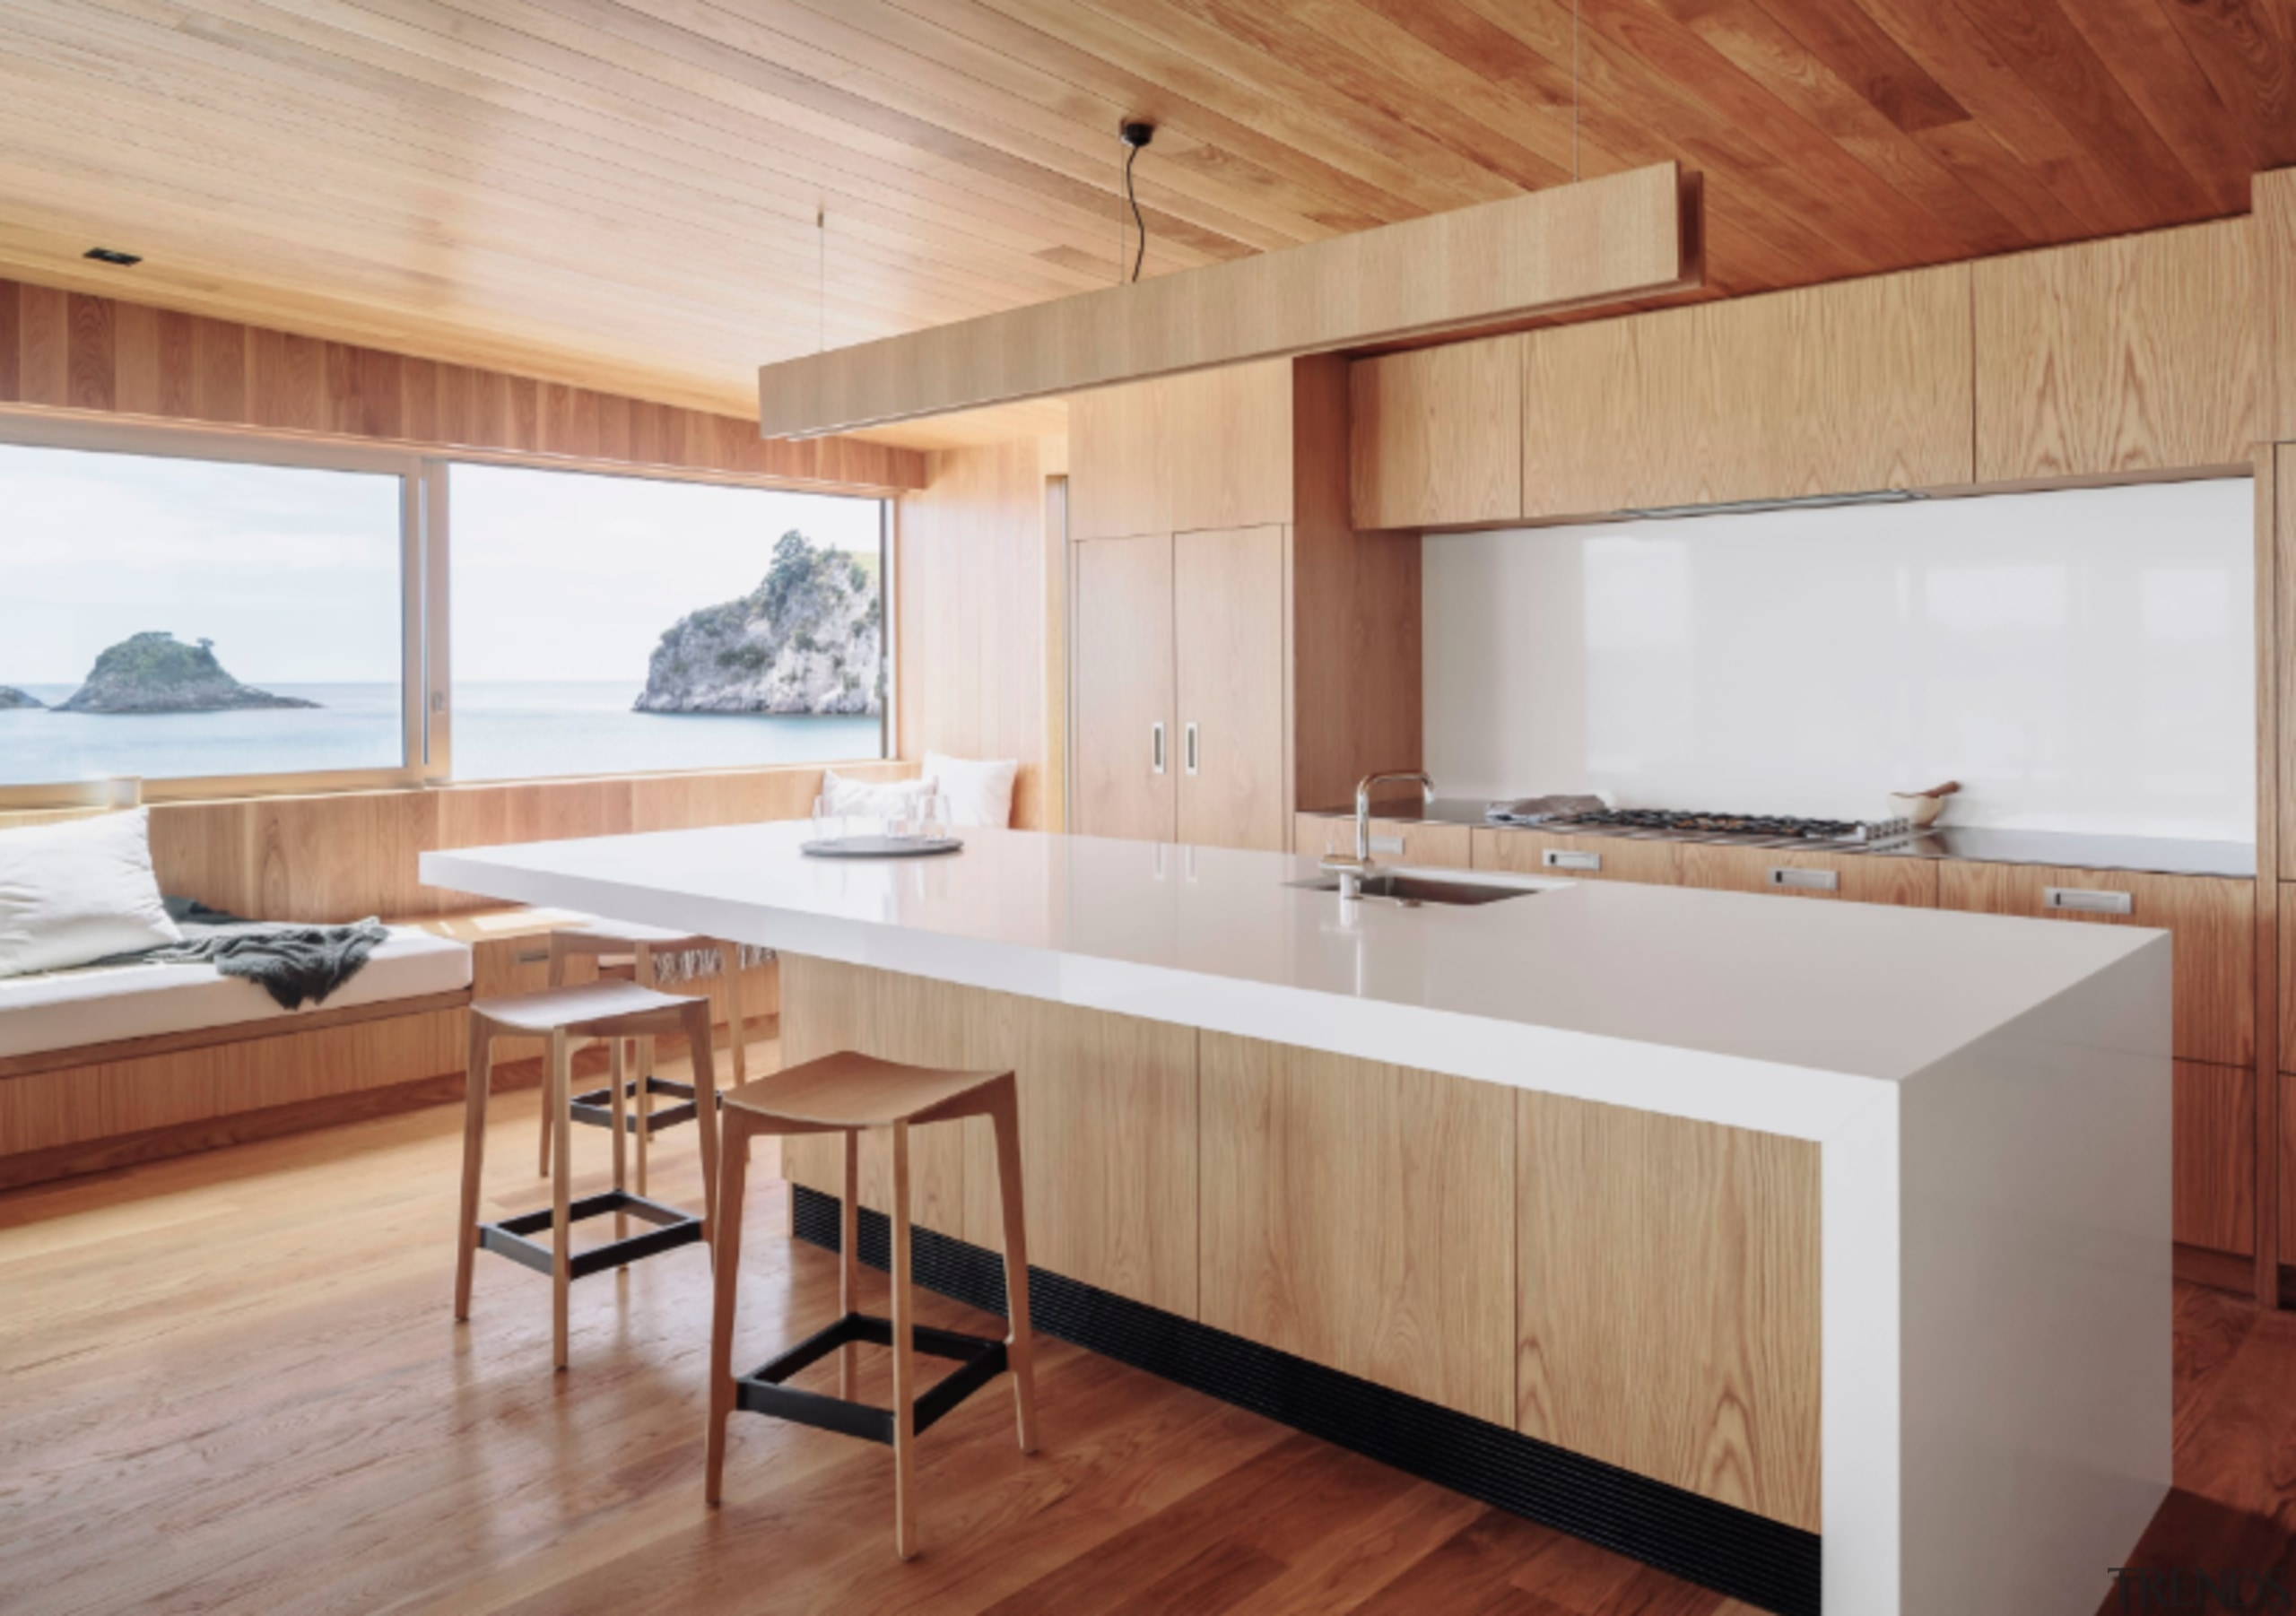 See more here architecture, countertop, floor, furniture, hardwood, house, interior design, kitchen, real estate, table, wood, wood flooring, gray